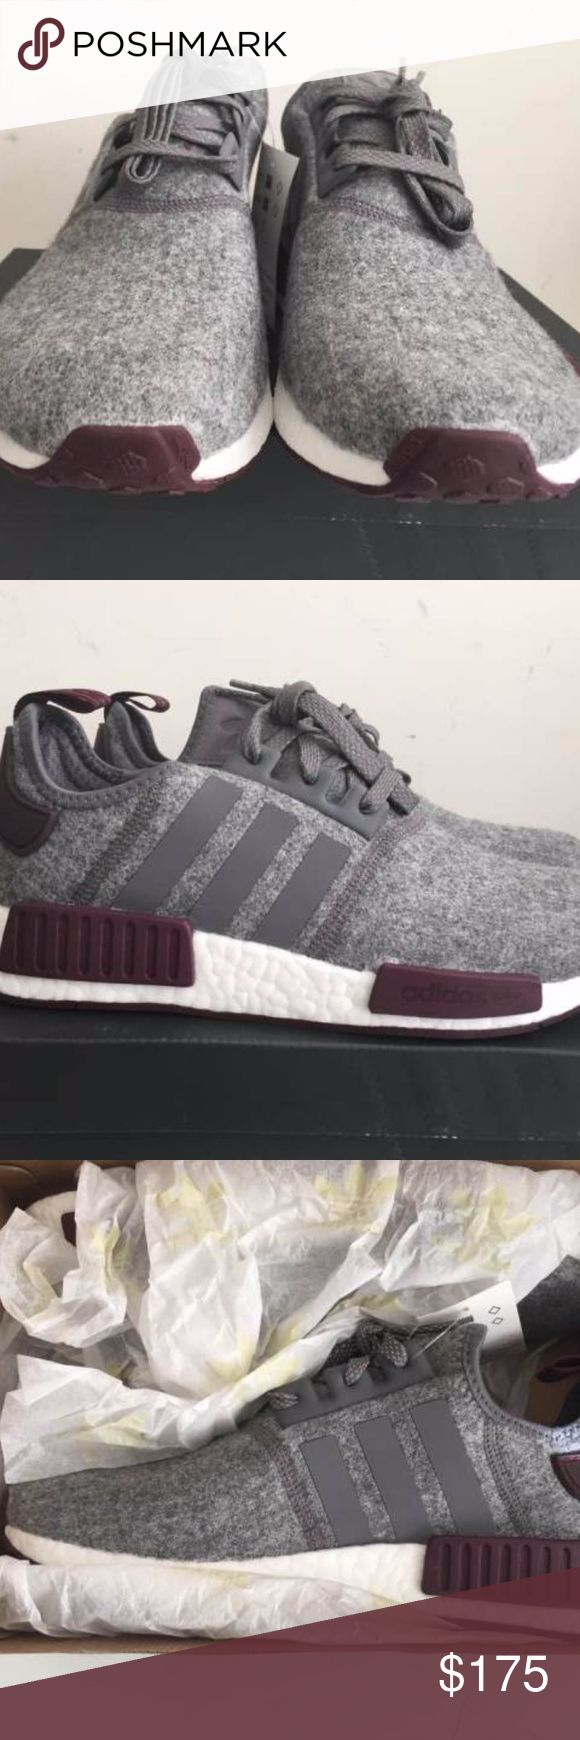 Champs Exclusive Adidas NMD 2017 100% Authentic and they come with receipt! Super limited! First come First serve! adidas Shoes Sneakers